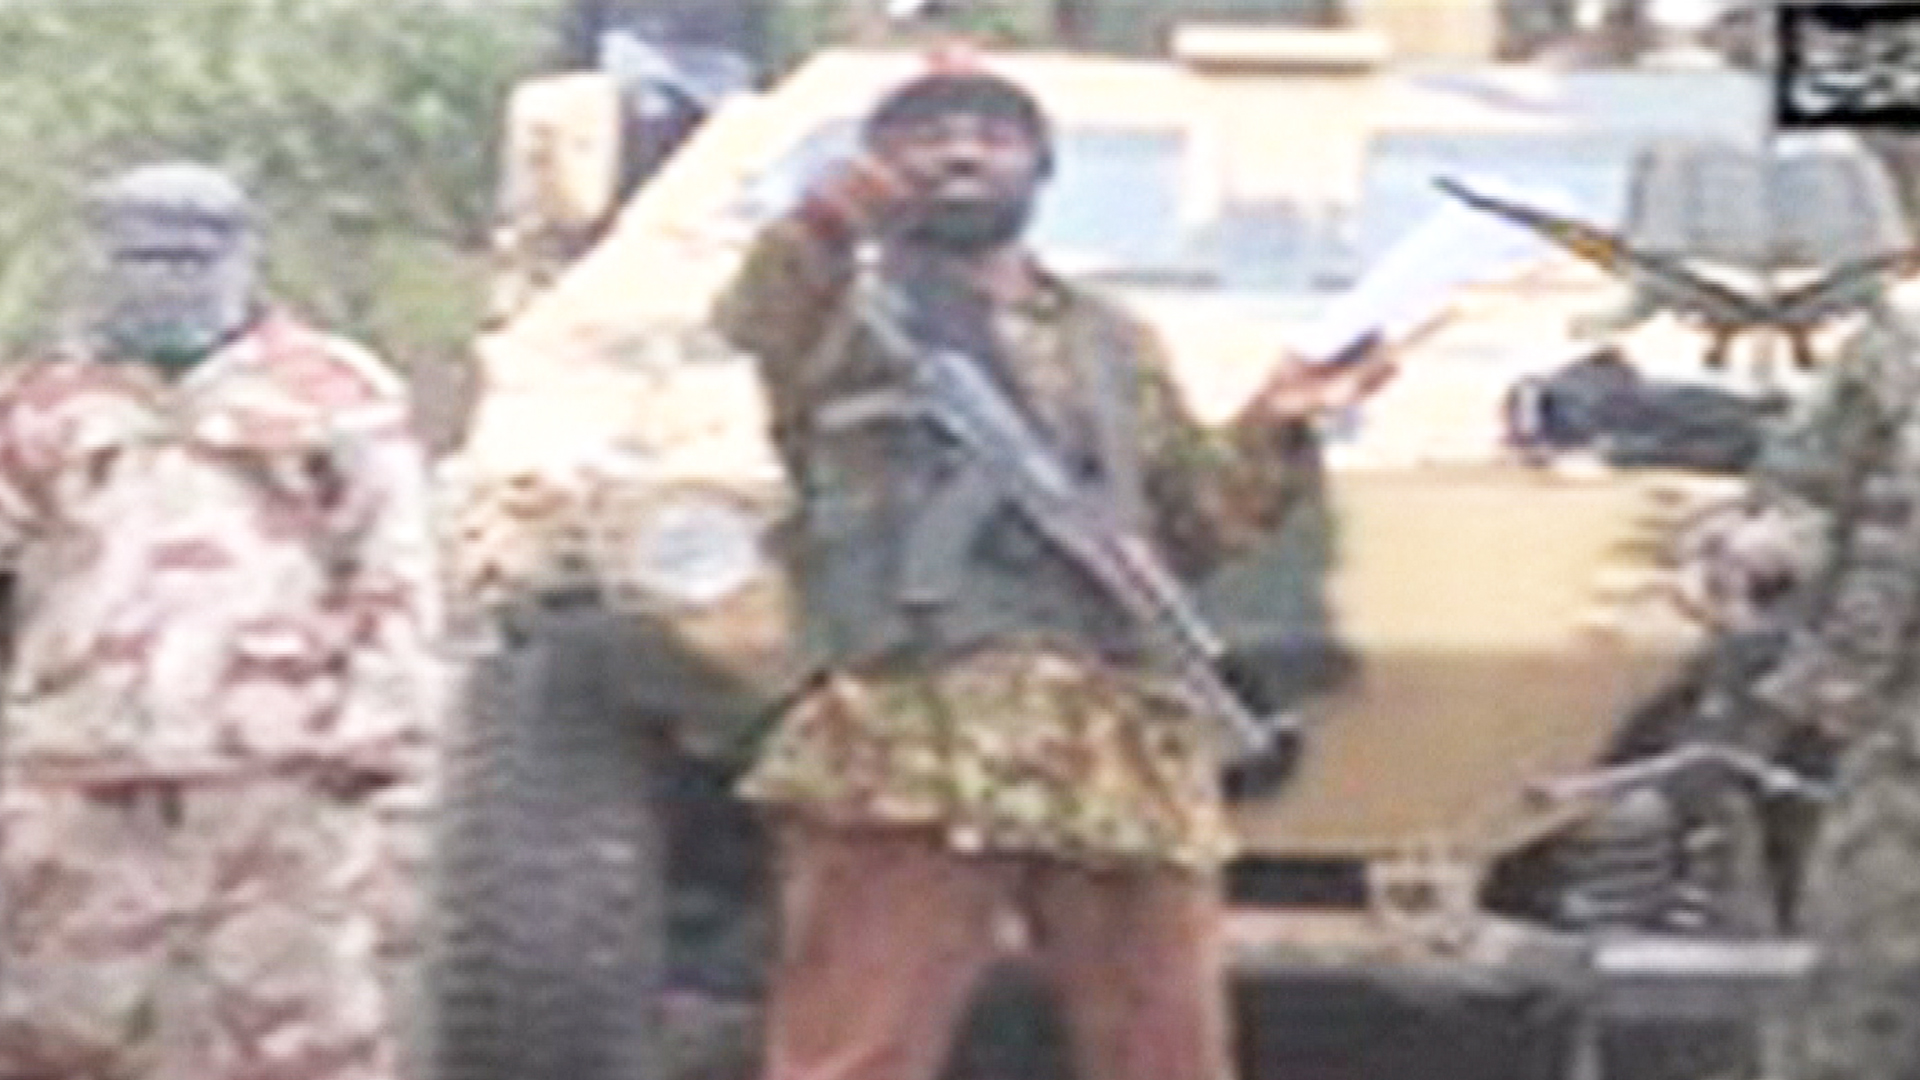 Boko Haram Could Make Good on Threat to 'Sell' Nigerian Girls